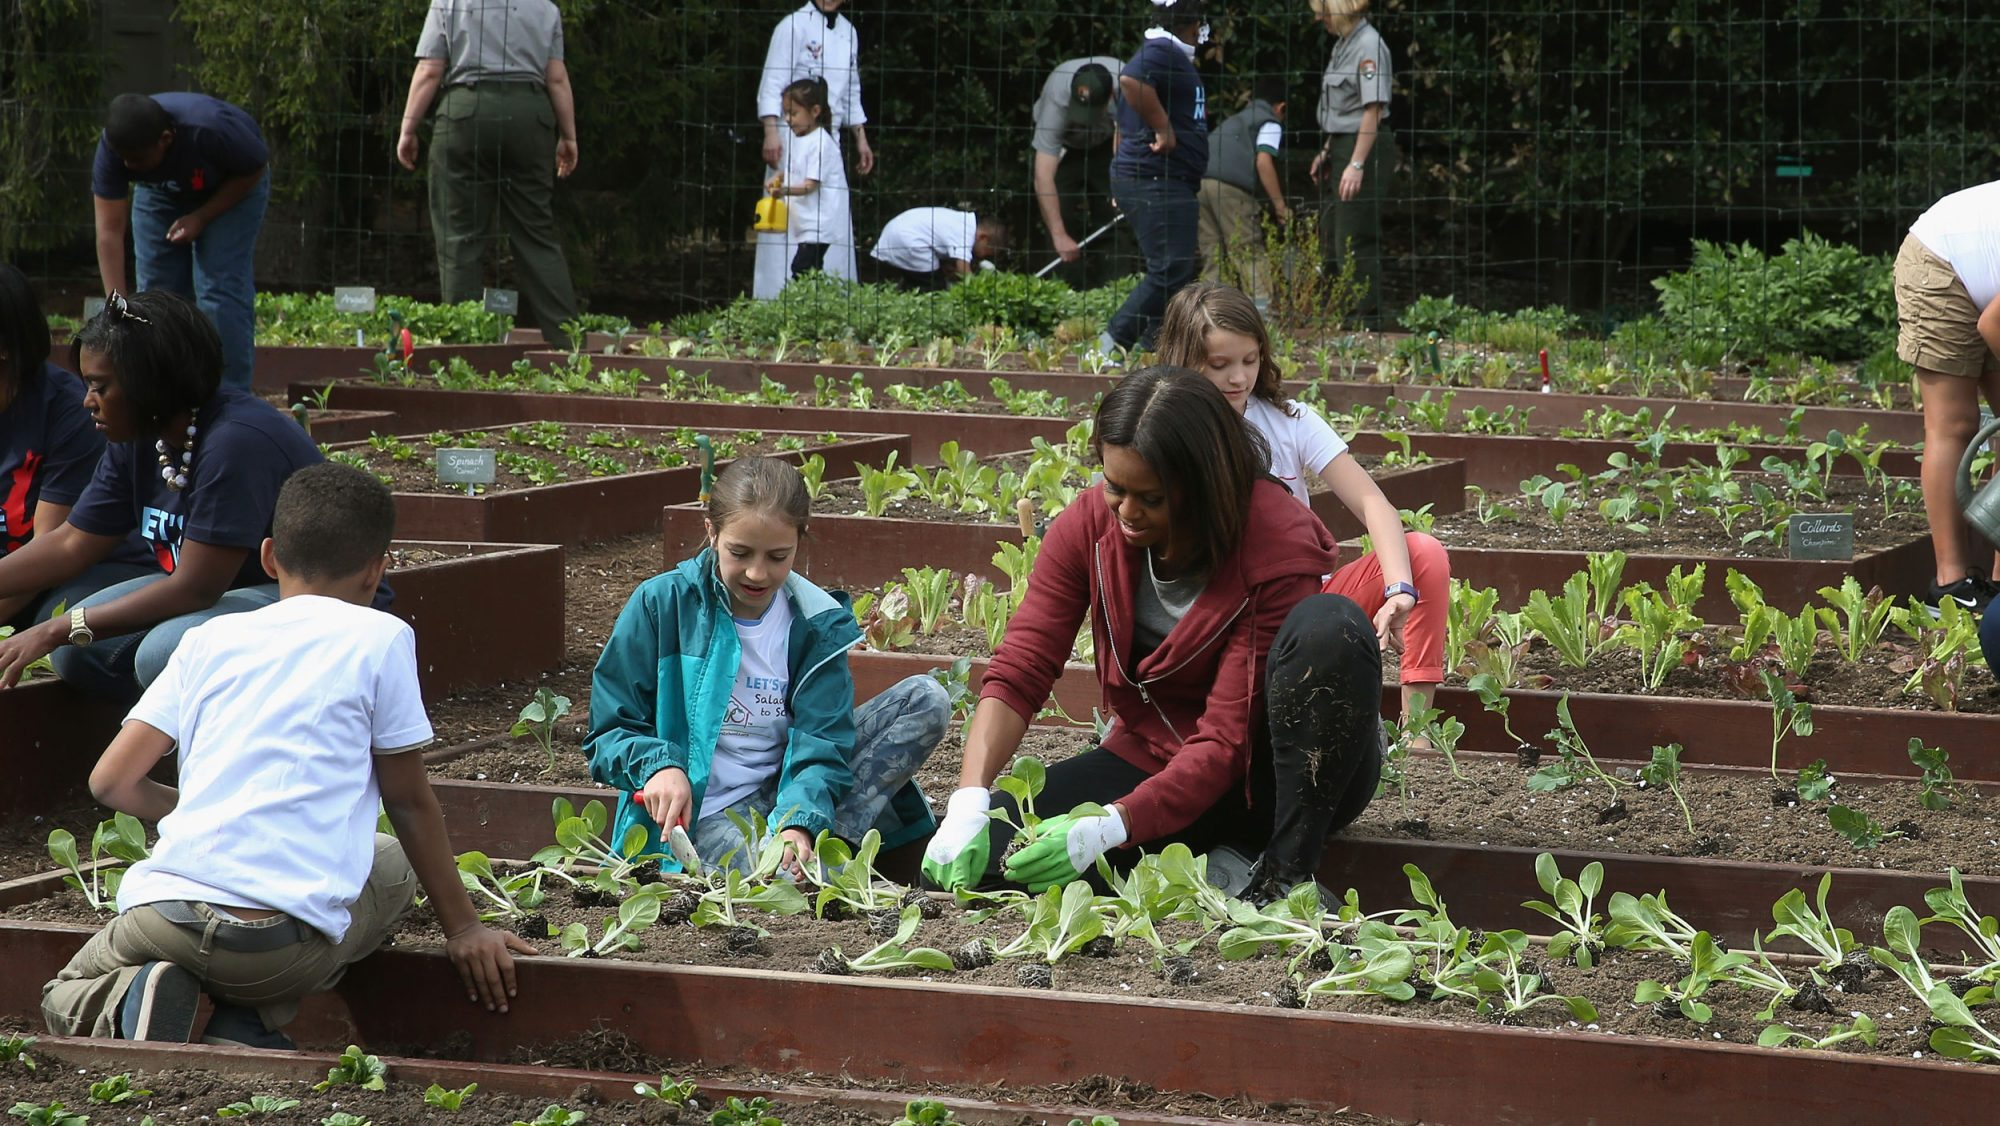 Michelle Obama Vegetable Garden